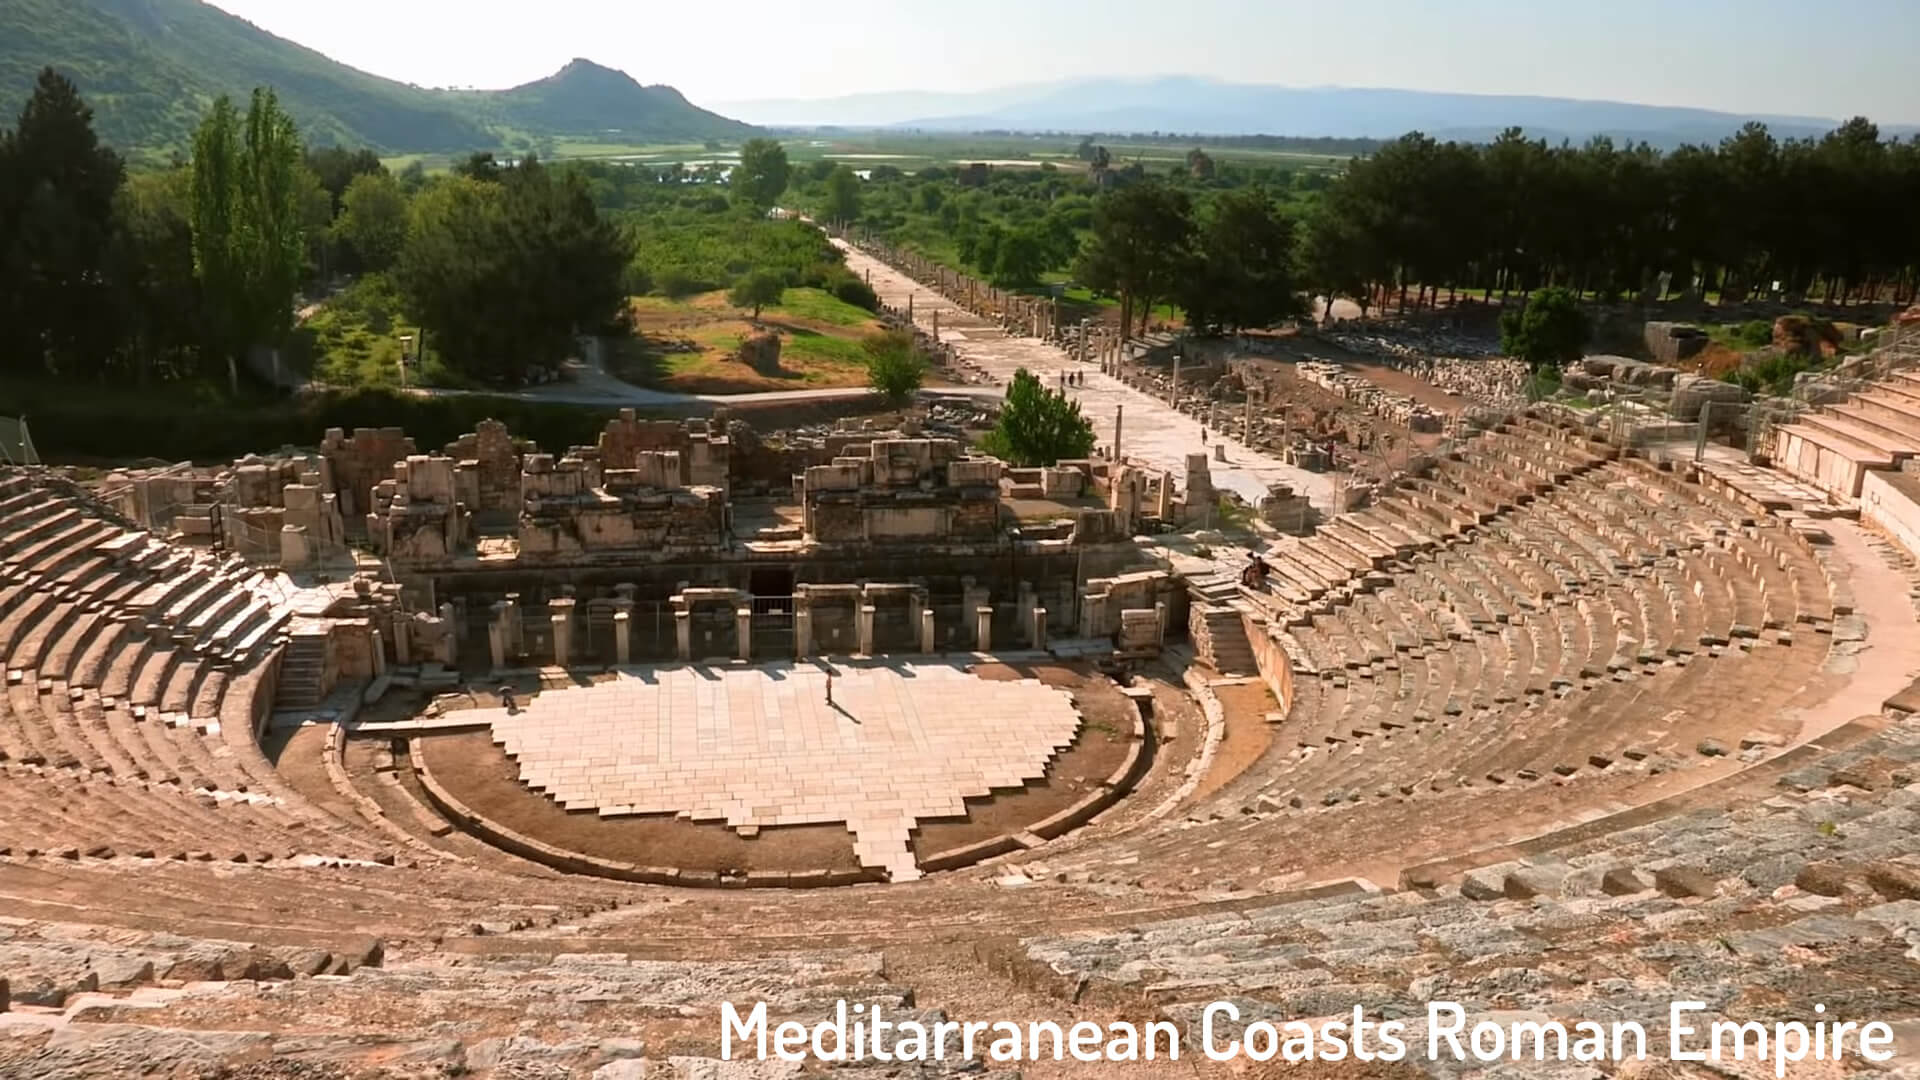 Meditarranean Coasts Roman Empire